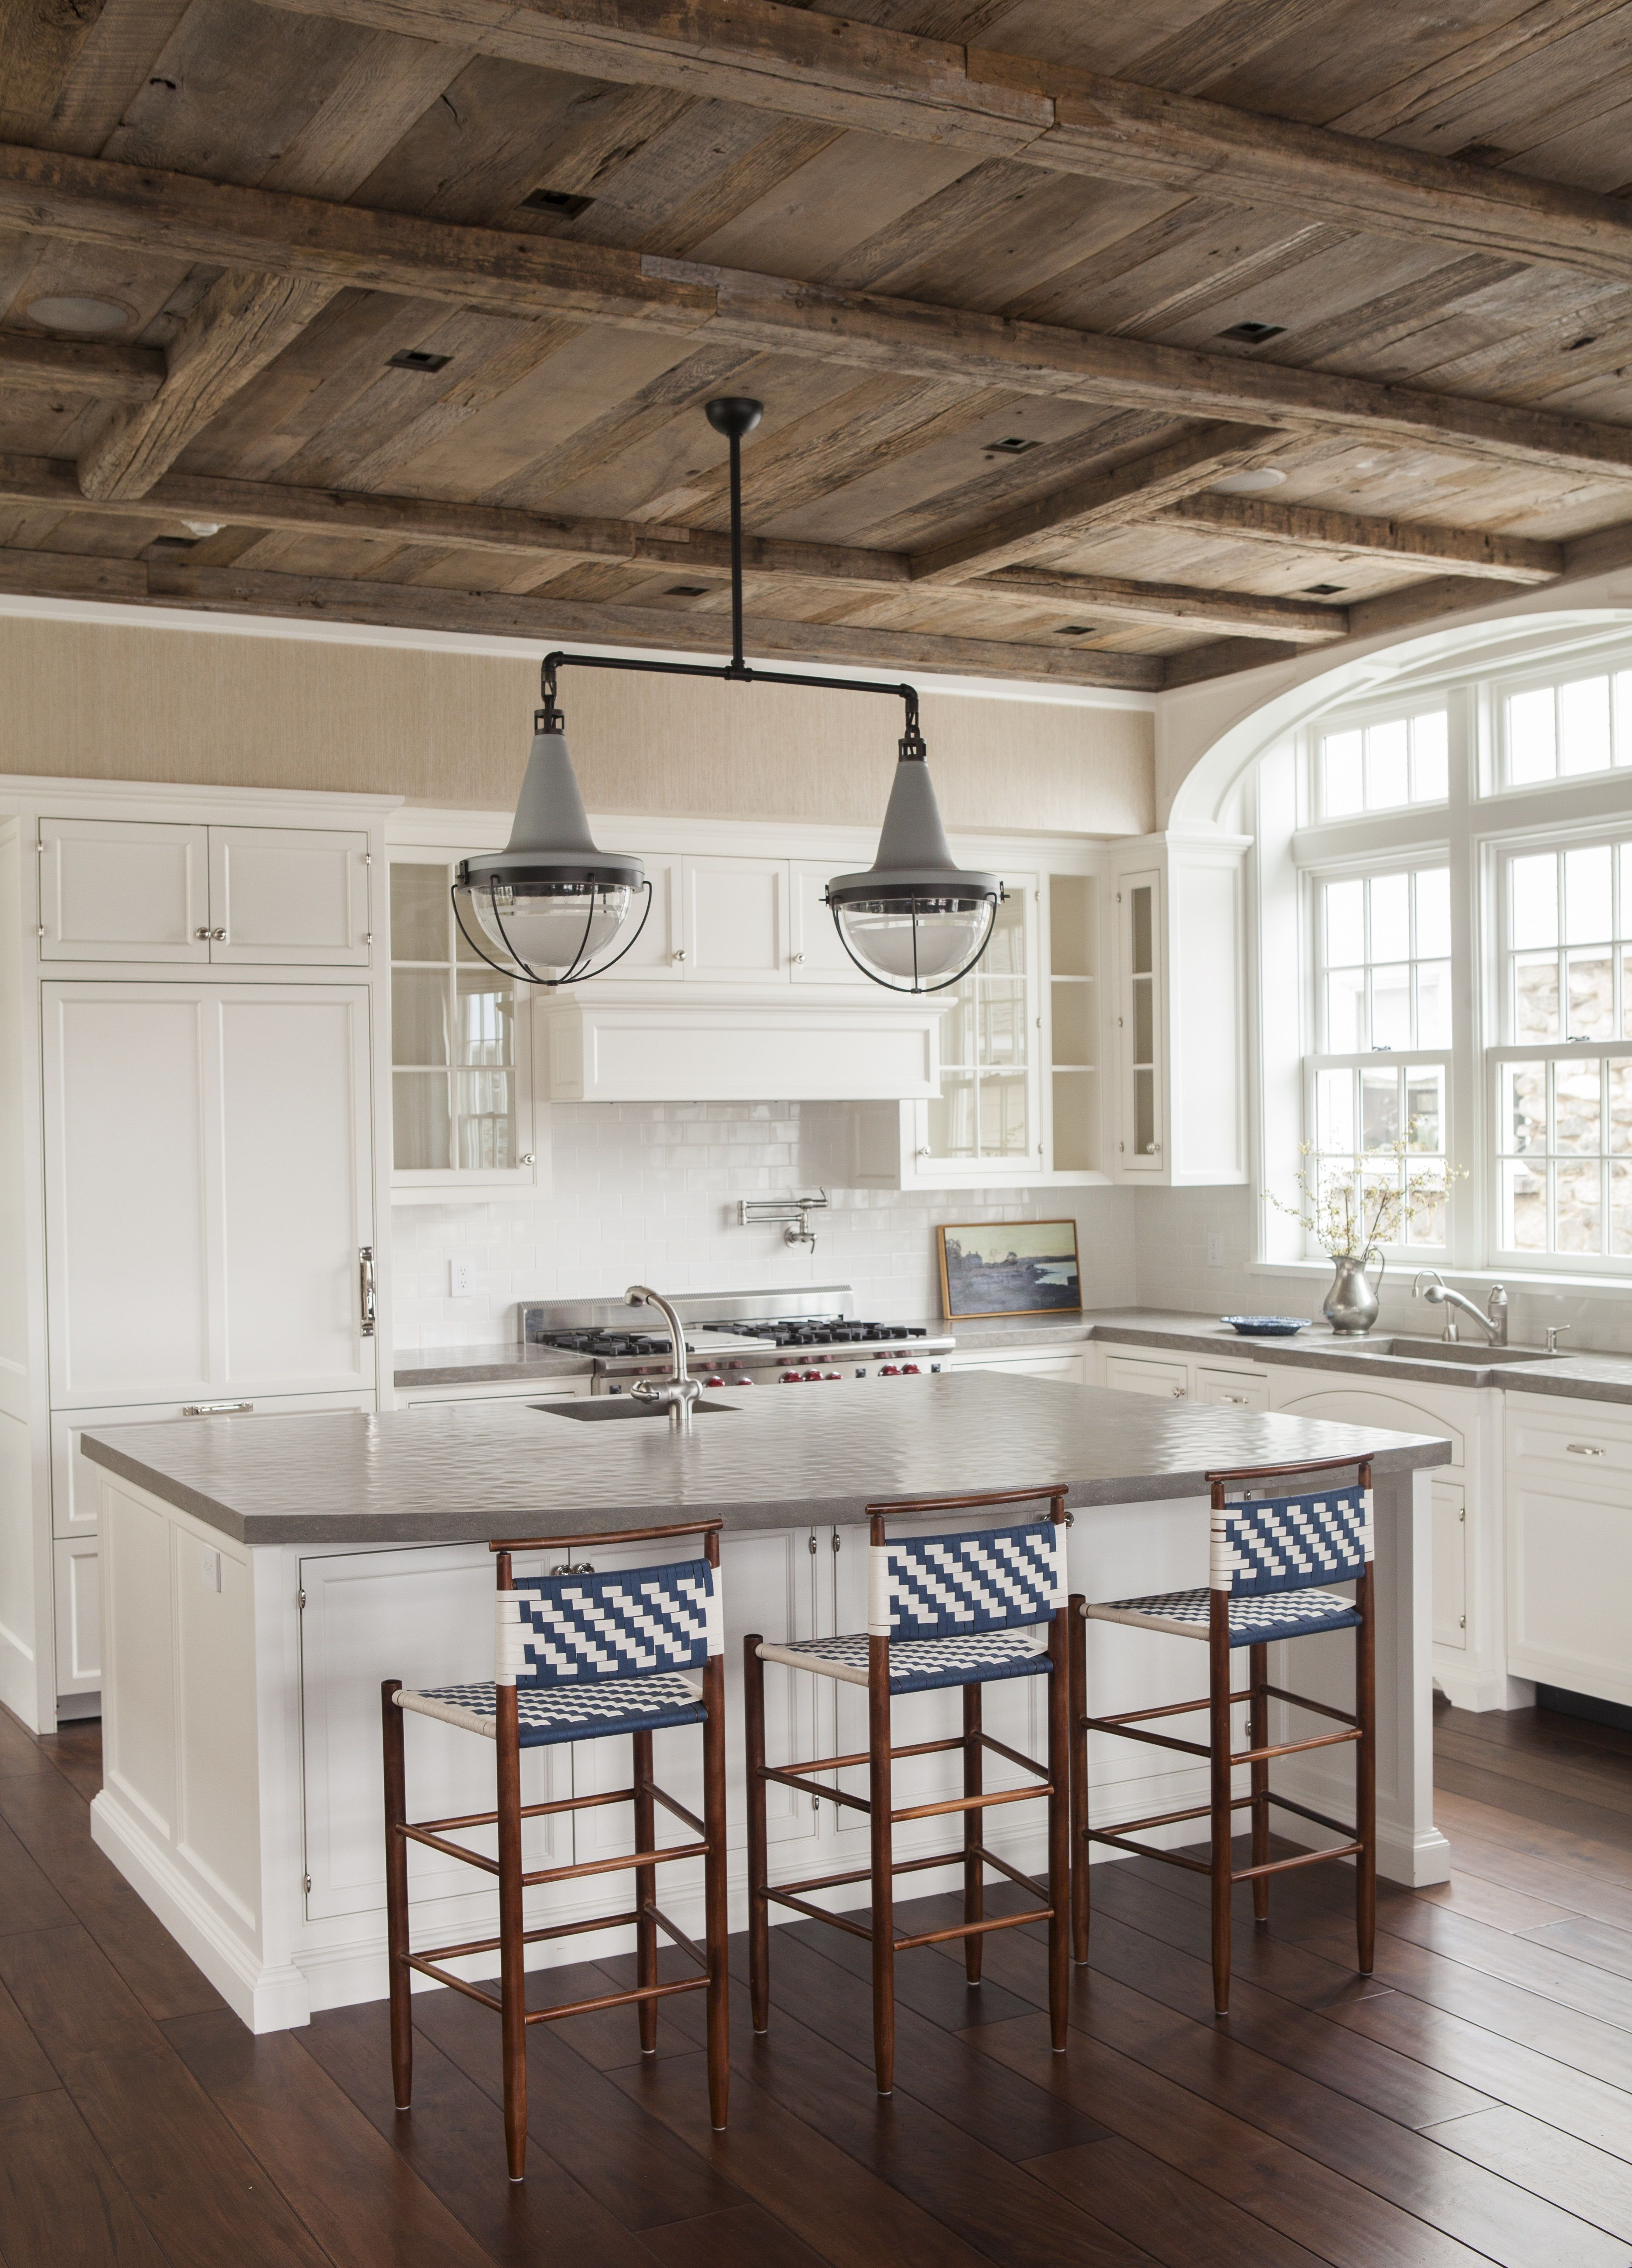 Greenwich, CT Pied-a-terre Kitchen by S.B. Long Interiors | Kitchens ...